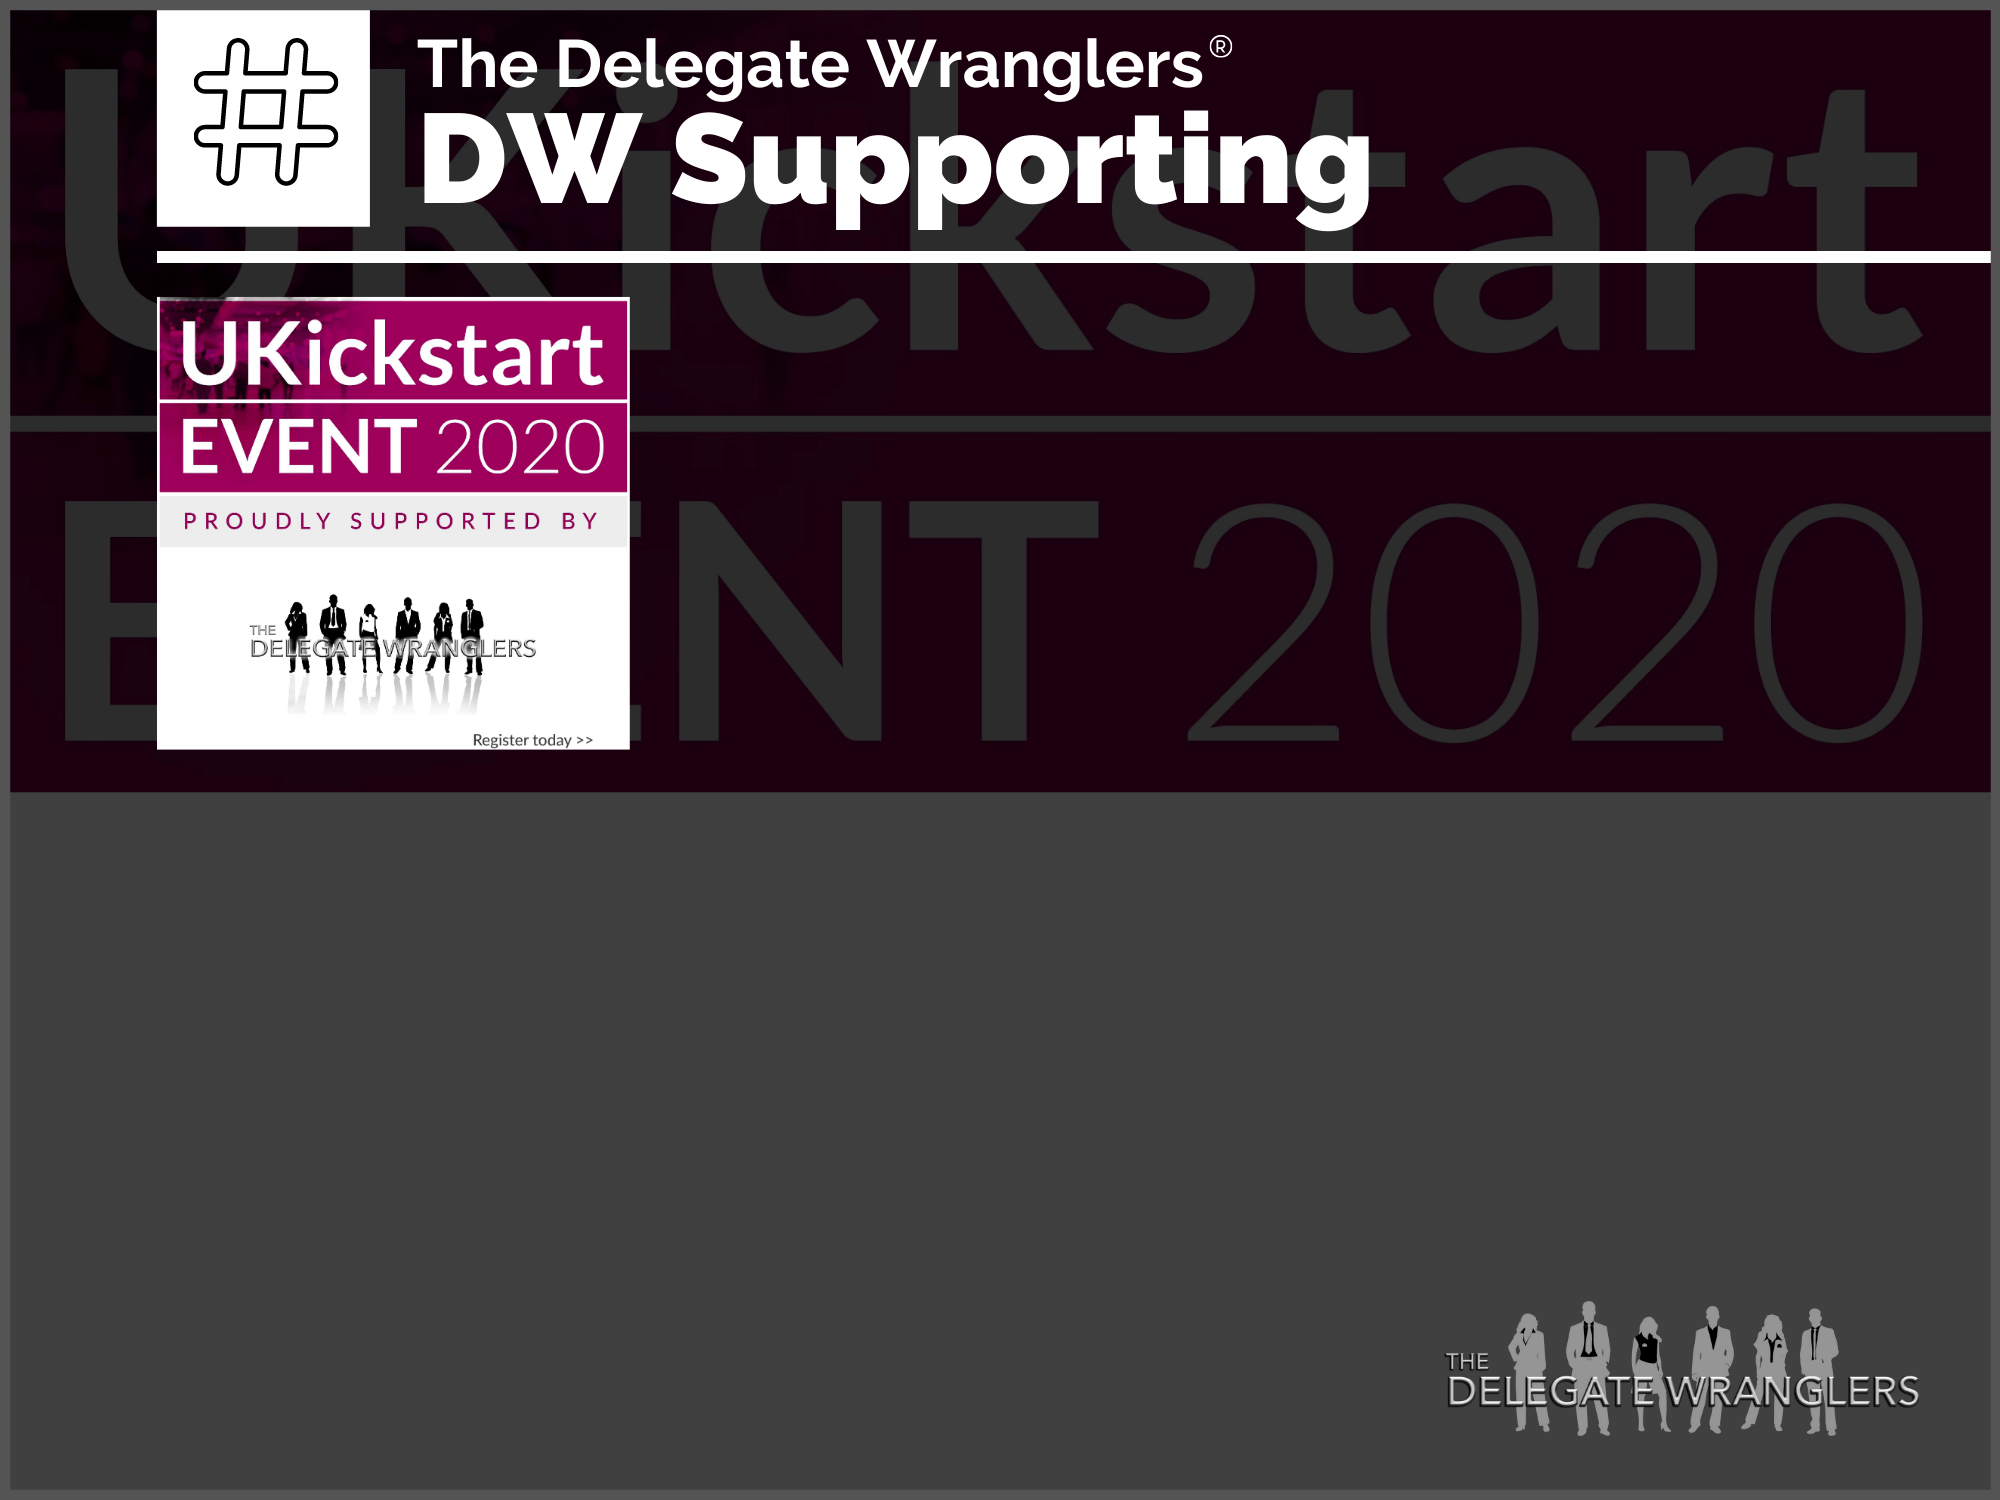 The Delegate Wranglers to support UKickstart EVENT, 2020